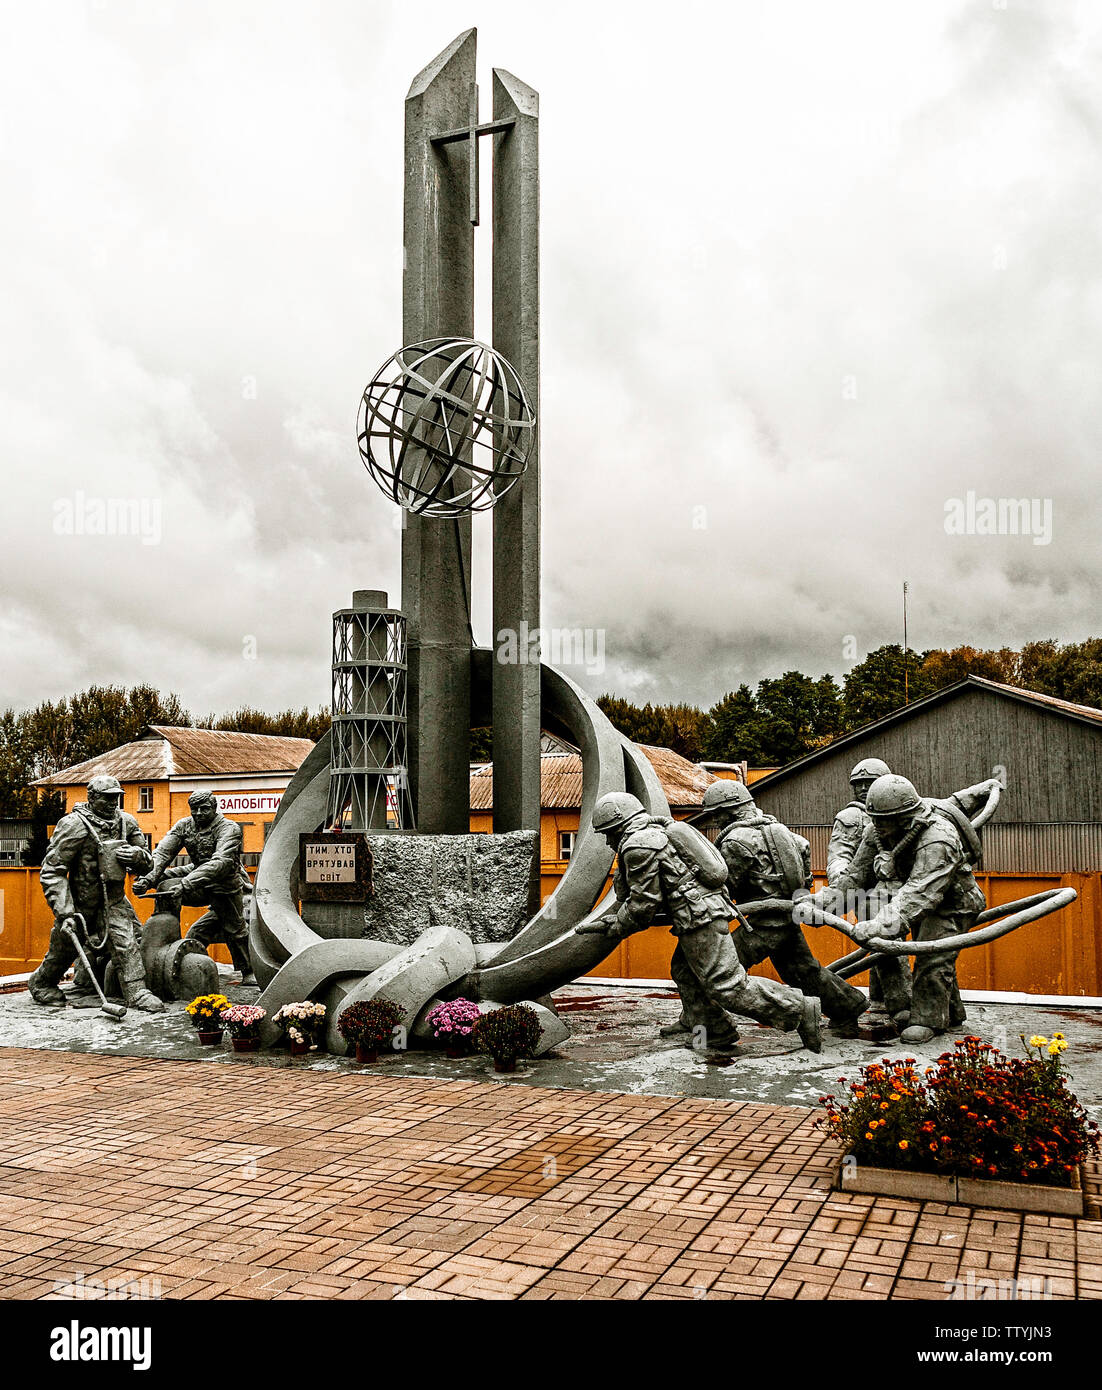 The Firemen of Chernobyl: Amonument. The nuclear accident occured during the evening of 26th April, 1986. Nothing like this had ever happened before. So what do you do? The Fire Brigade were sent in to deal with the unknown and within days they were all dead. Radiation. This eloquant and well kept monument is a tribute to their courage. 22 young lives gone. The first of many. Those in charge did not know what to do, they were scared of telling Gorbachev. He found out the next morning, with a phone call from the Swedish president, asking about a radio active cloud coming up from Ukraine - Stock Image